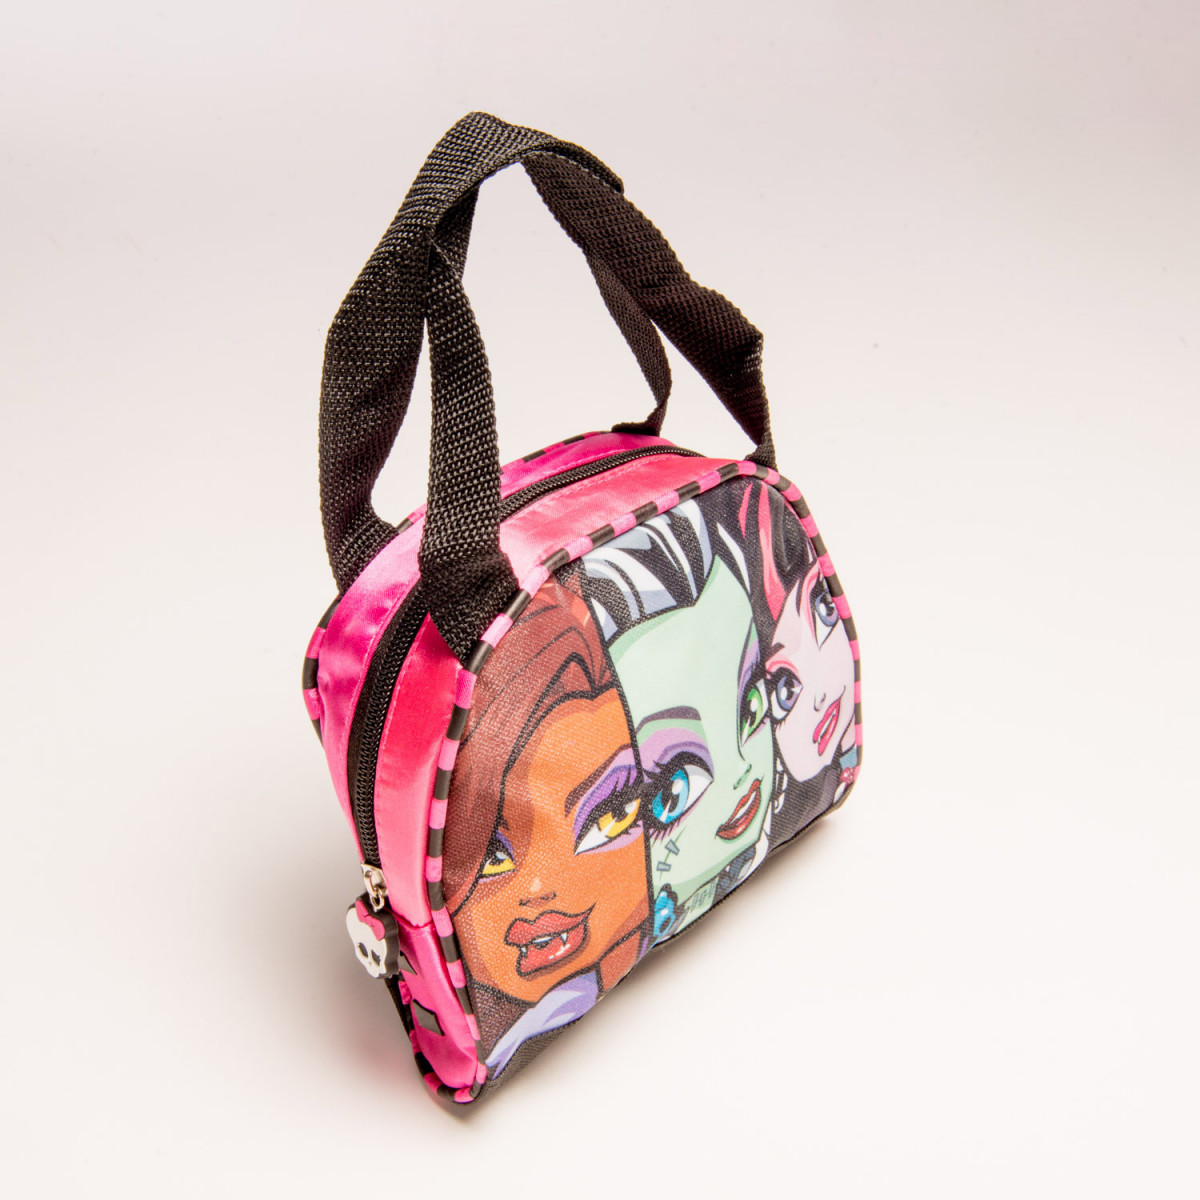 CARTERA FOOTY MONSTER HIGH 2 CIERRES